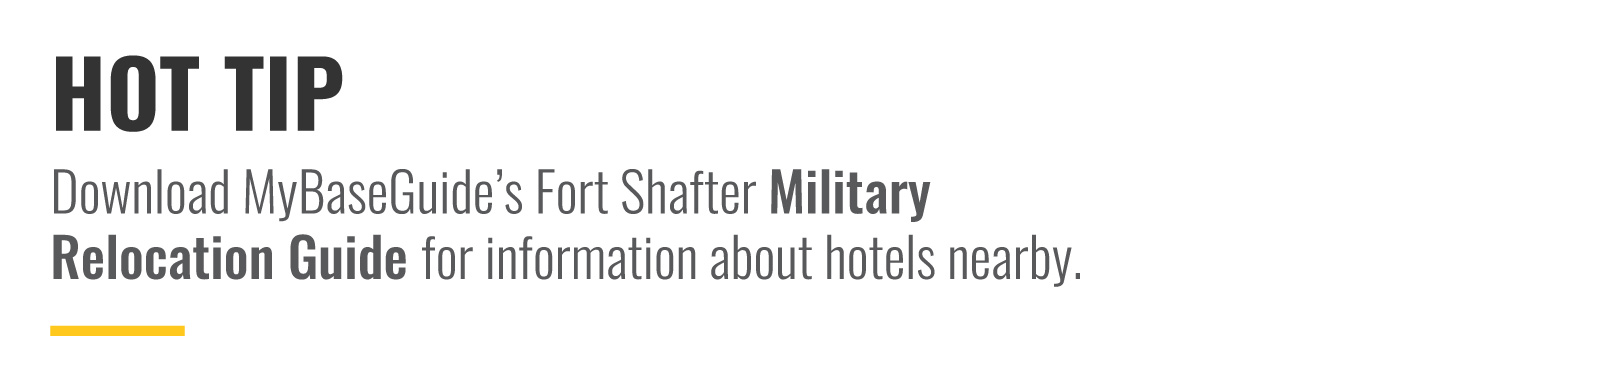 Download MyBaseGuide's Relocation Guide for information about hotels nearby.